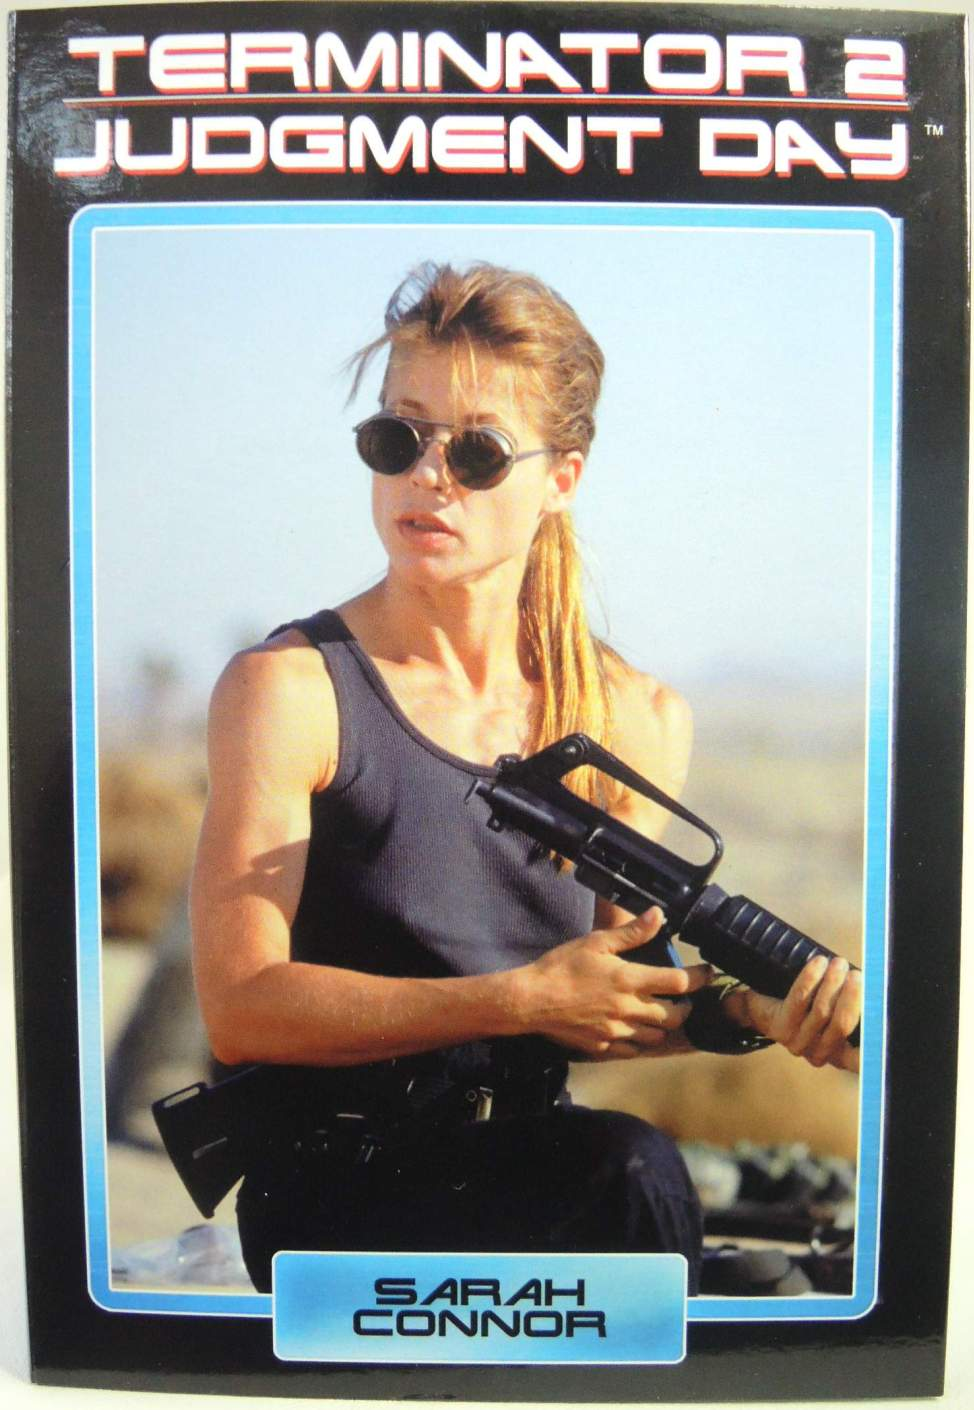 NECA Terminator Ultimate Figure - Sarah Connor NECA, Terminator, Action Figures, 2015, scifi, movie